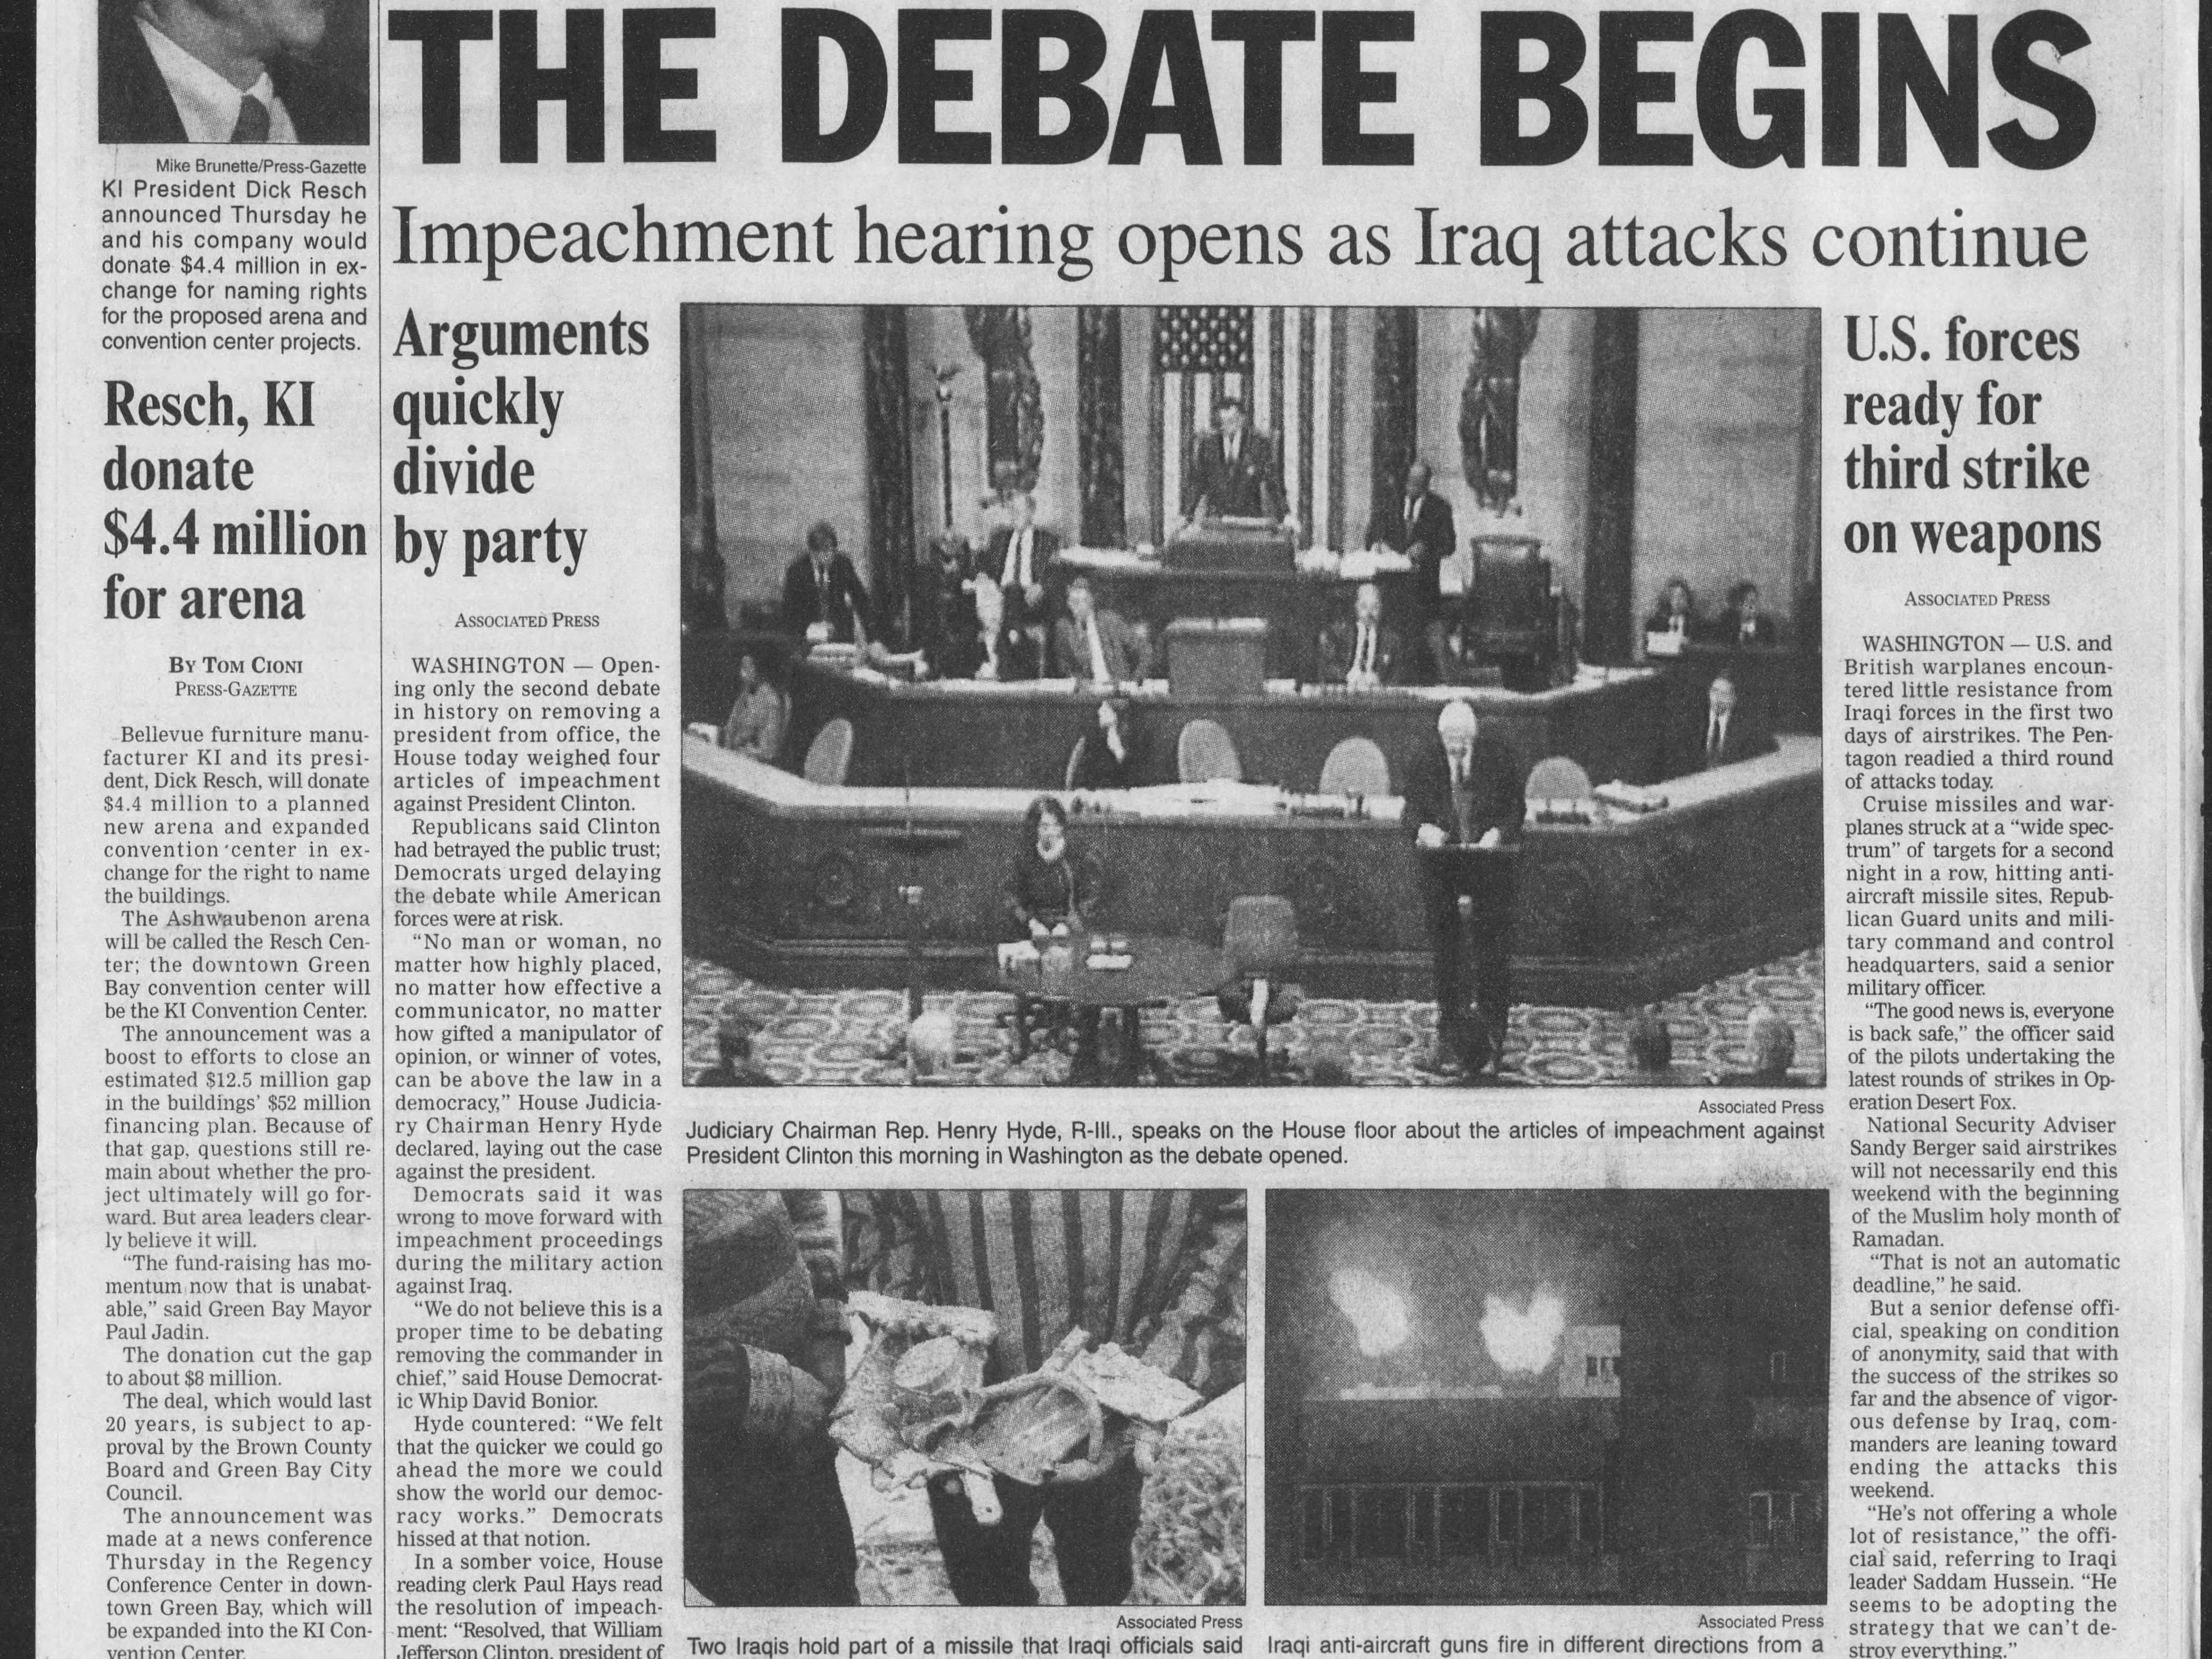 Today in History: Dec. 18, 1998